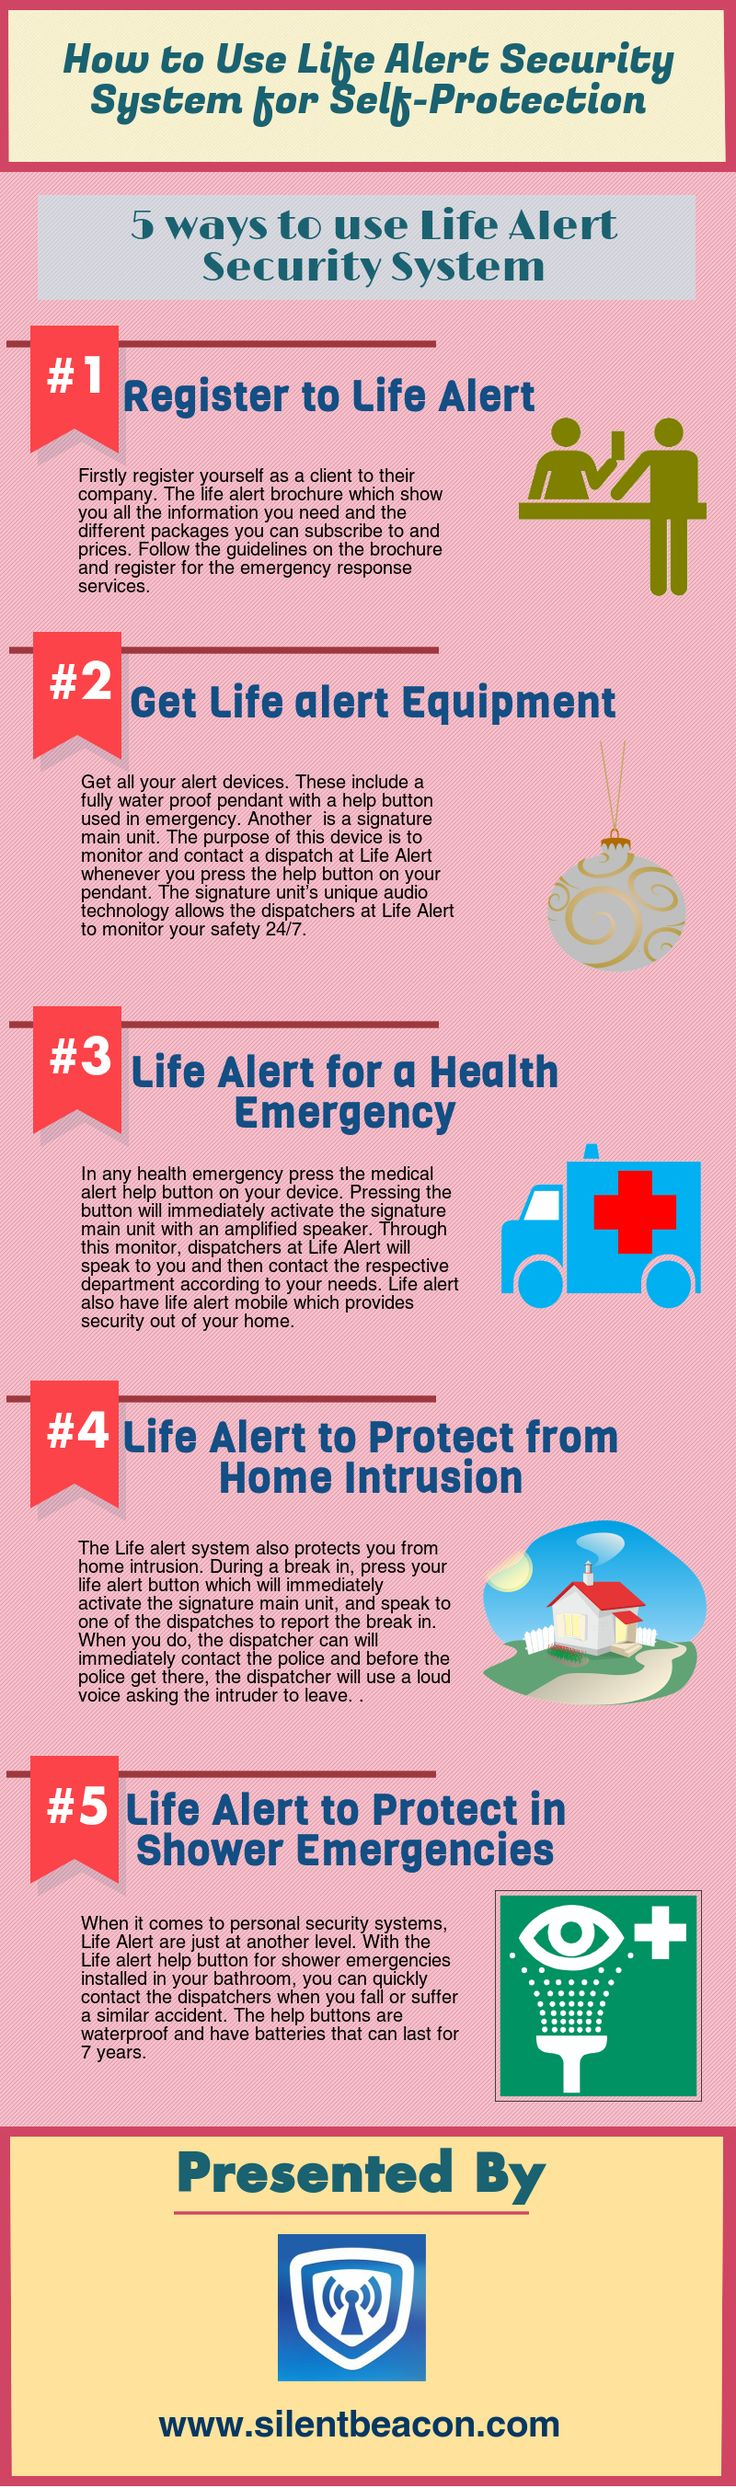 Life Alert is an emergency alert company that provides 24/7 emergency response. With their unique personal security systems and innovative audio technology, Life Alert is able to monitor clients, effectively and notify authorities in case of any emergency. #lifealert #silentbeacon #personalsafetydevice